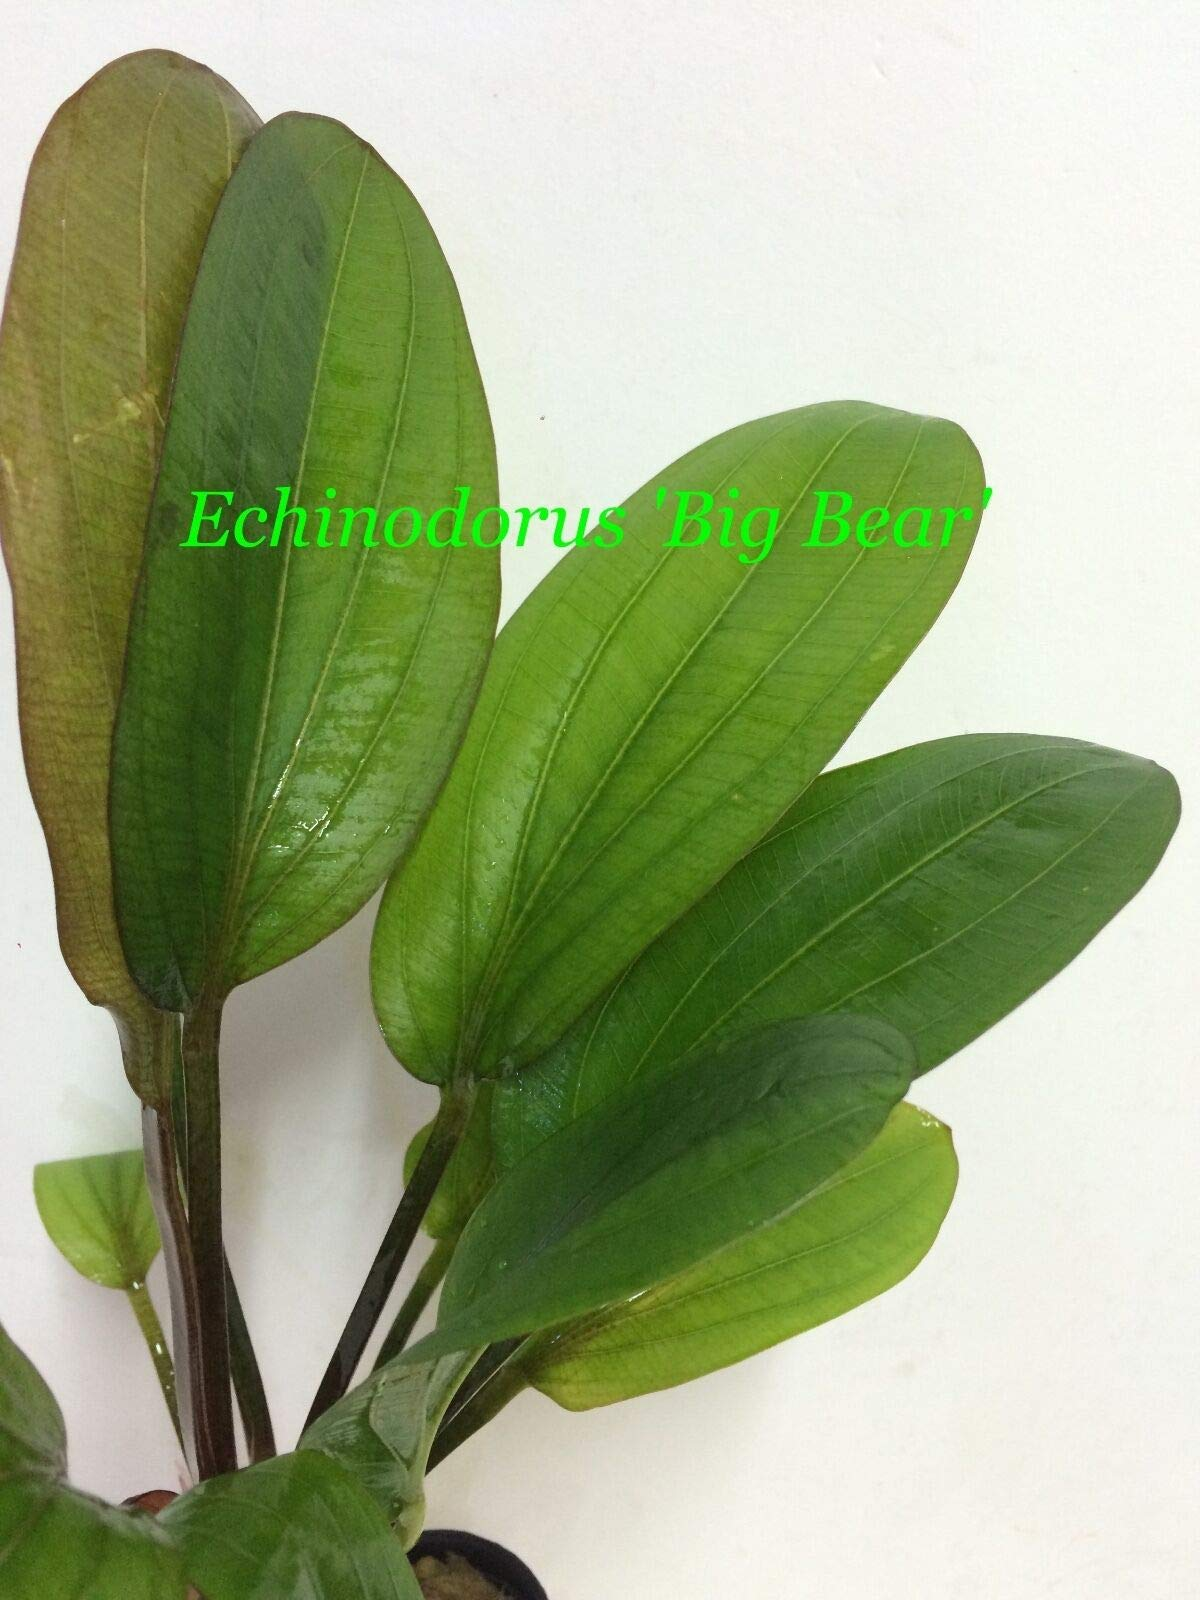 Healthy Live Aquatic Fresh Water Plant Echinodorus 'Big Bear' Potted P180 jKE -104